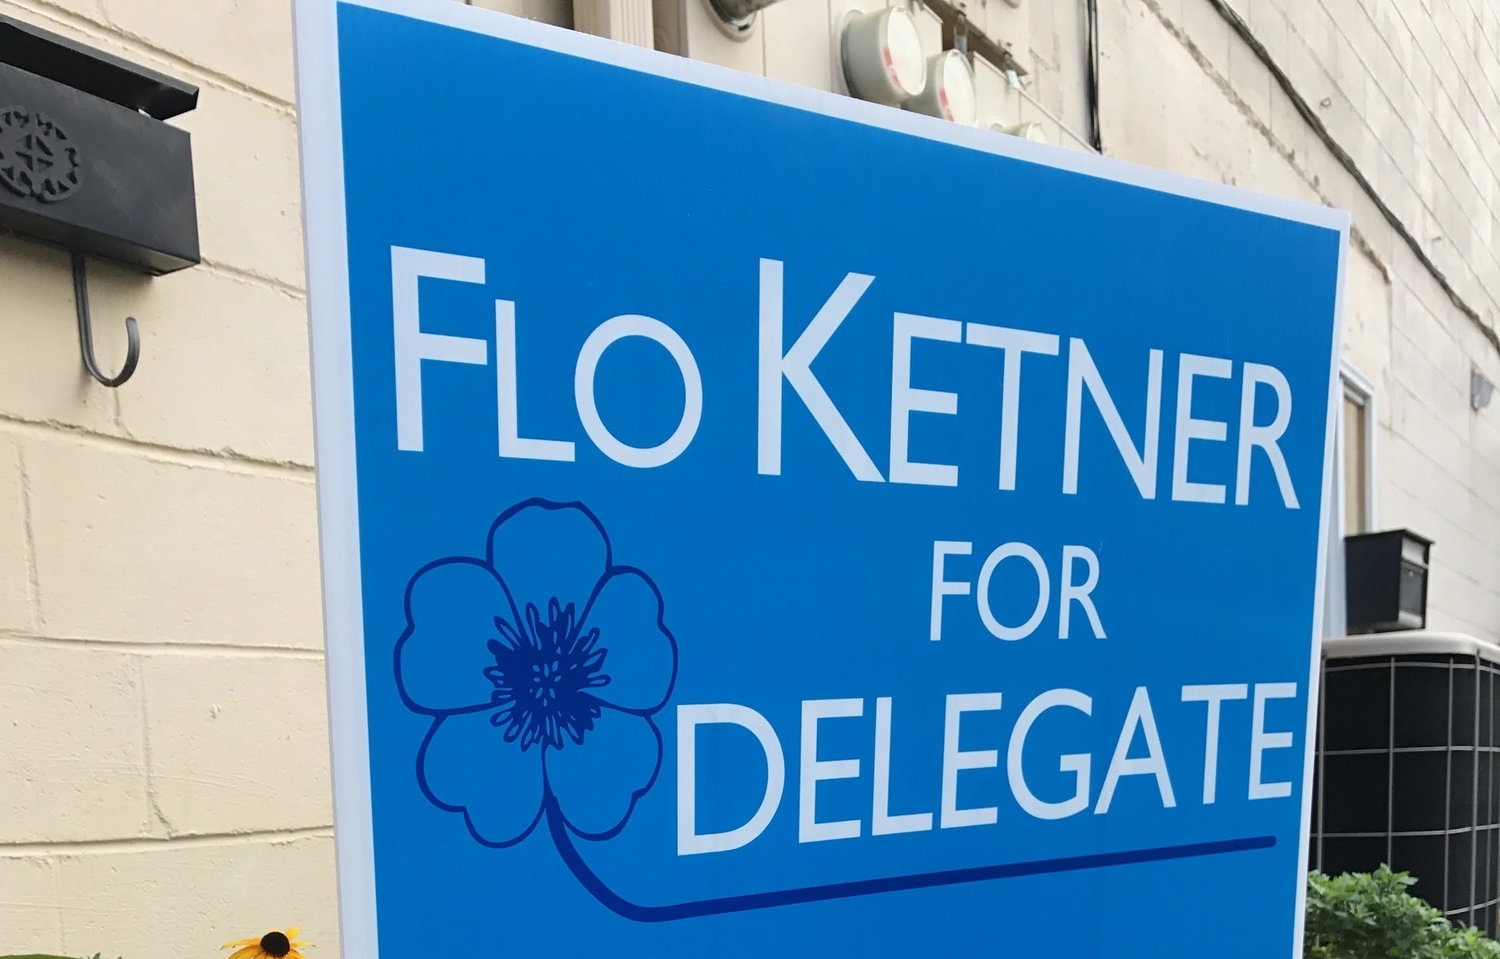 Flo+Ketner+for+Delegate.jpeg